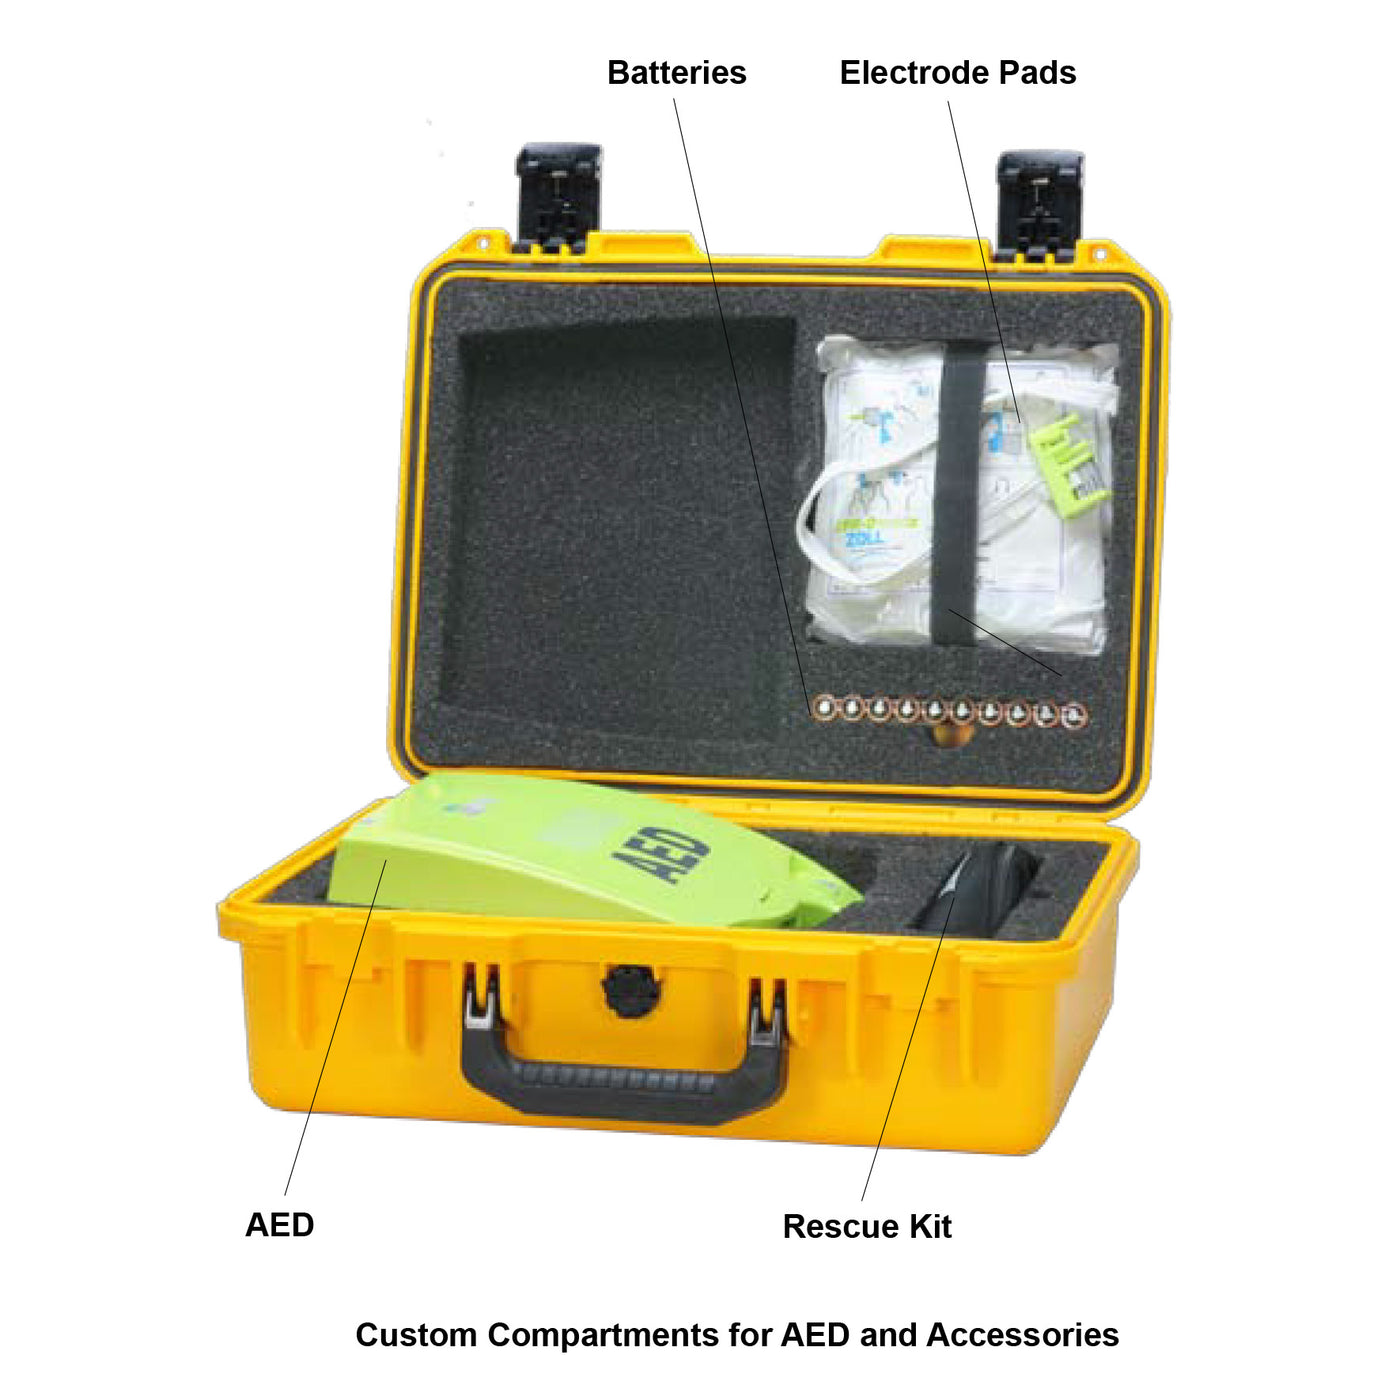 Shok Box® Watertight Carrying Case for the ZOLL AED Plus